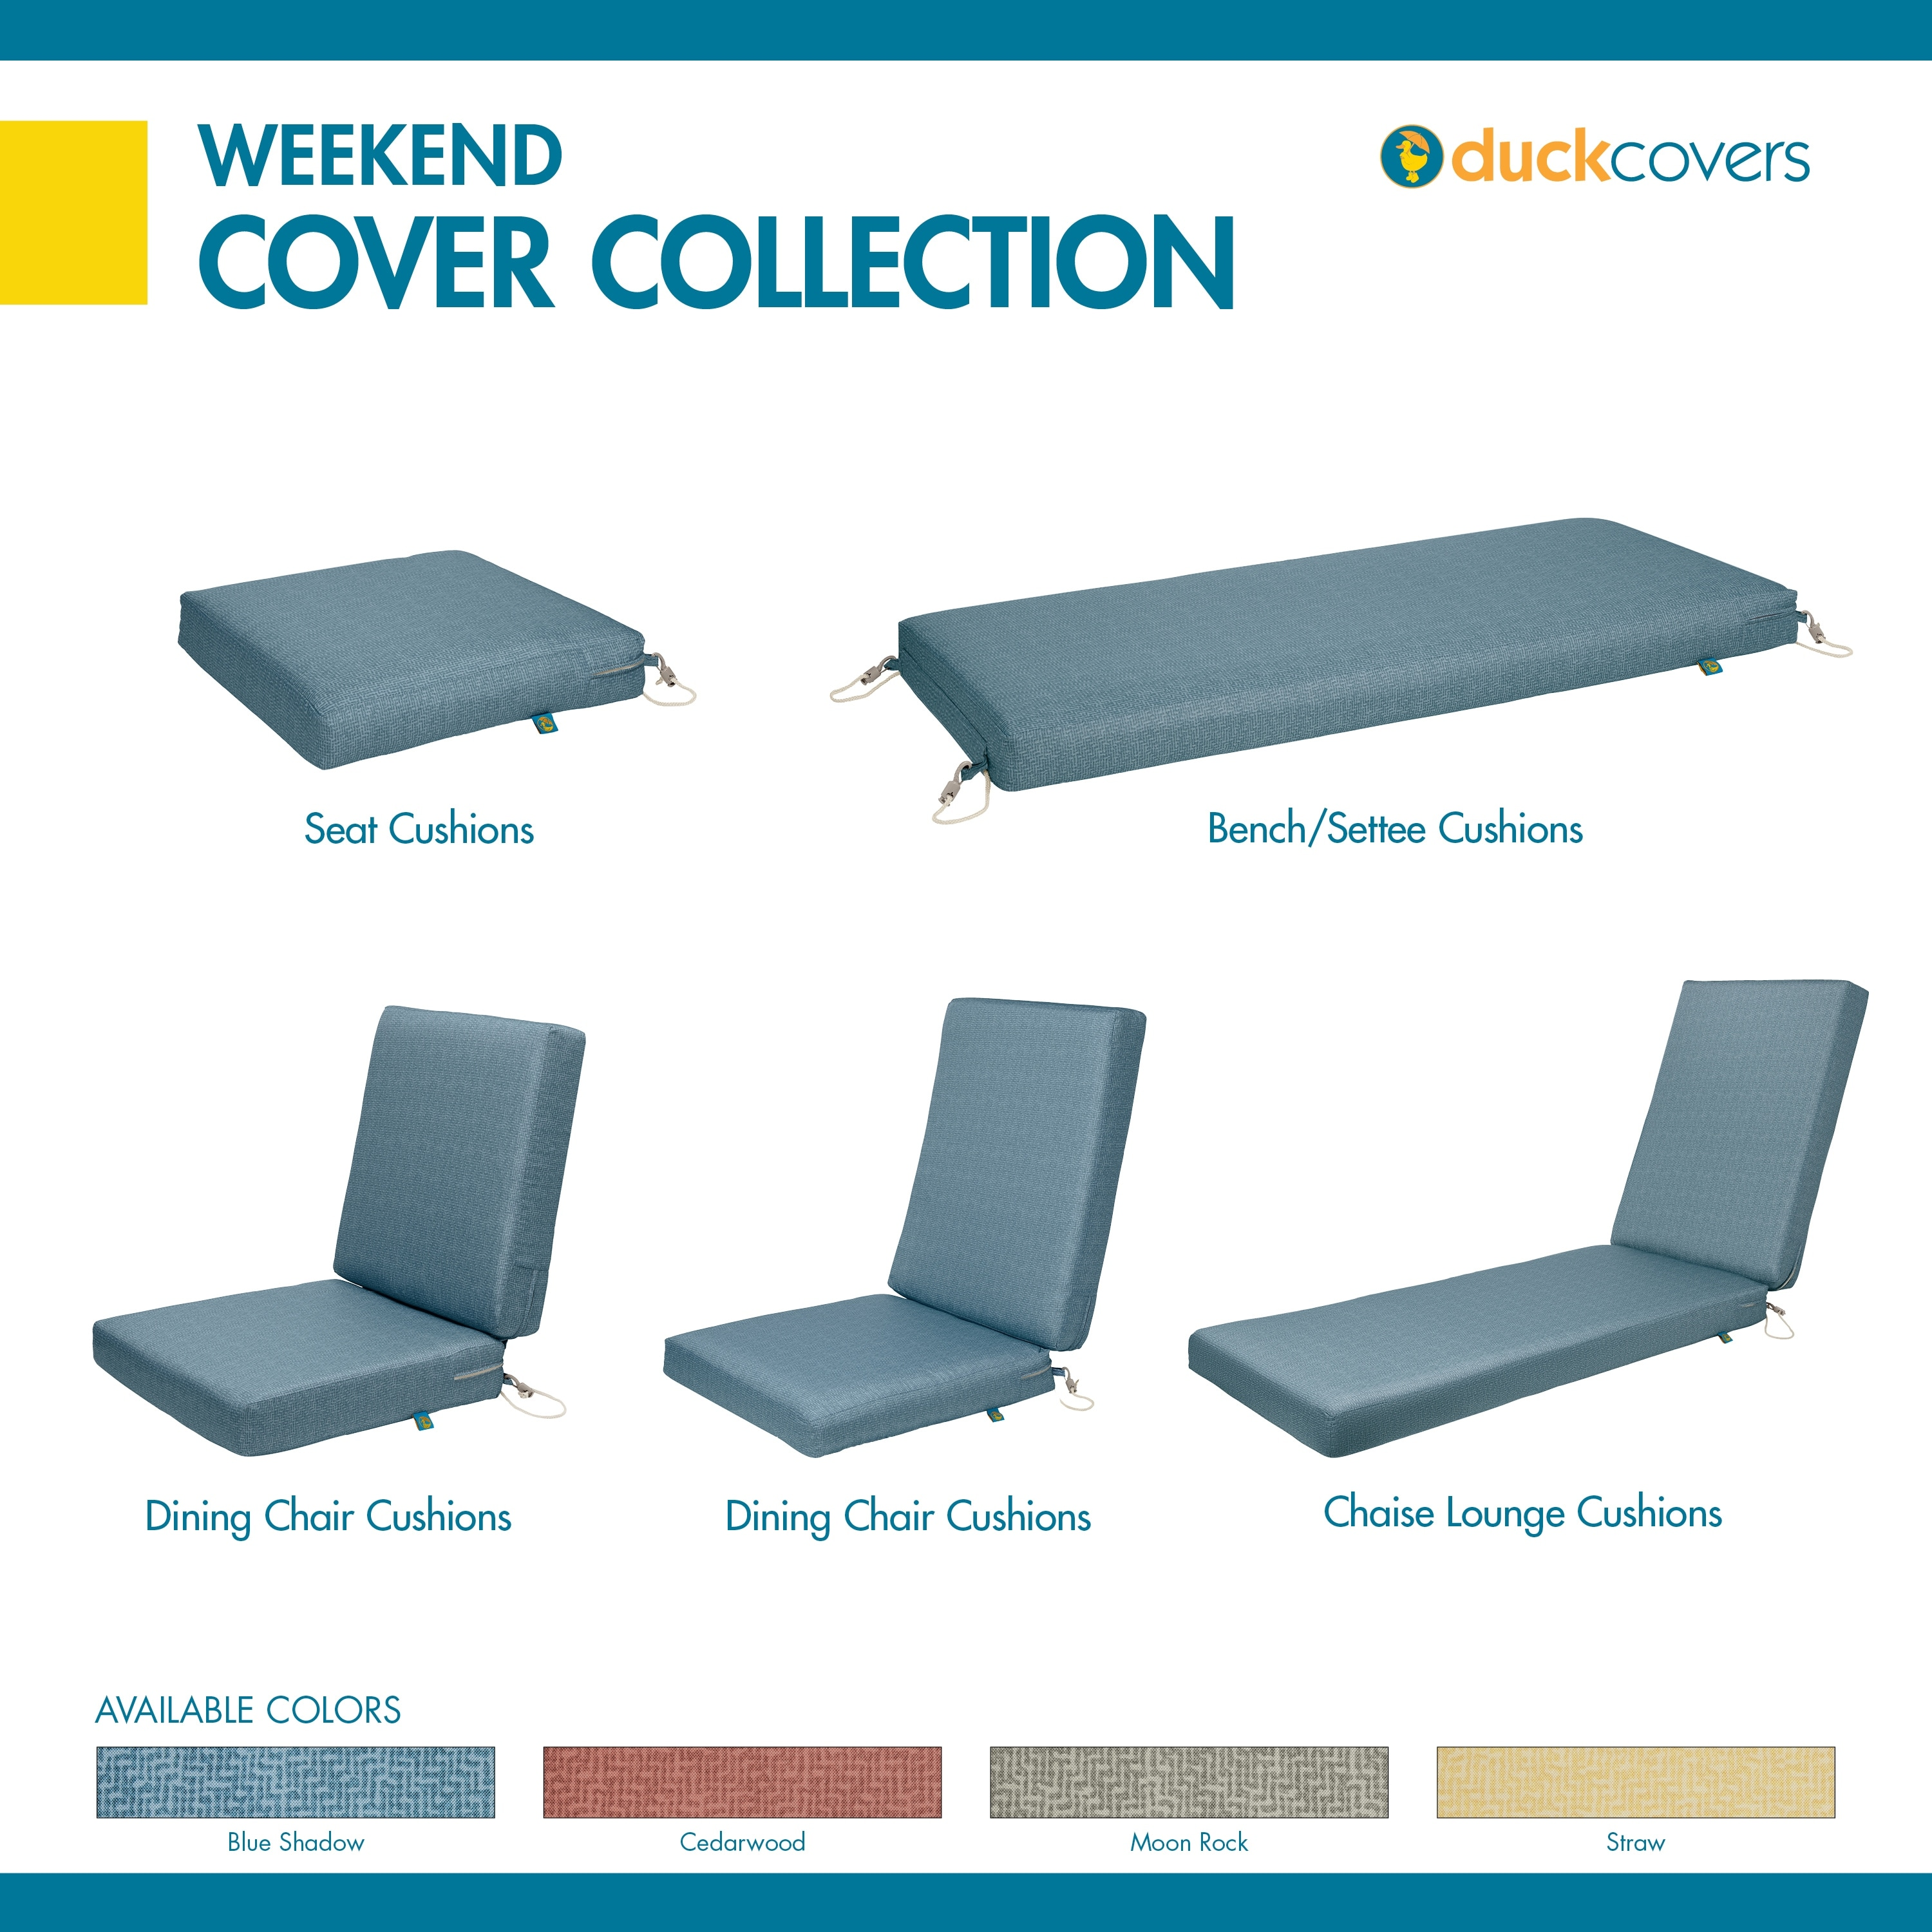 Moon Rock Duck Covers Weekend Water-Resistant 42 x 18 x 3 Inch Outdoor Bench Cushion